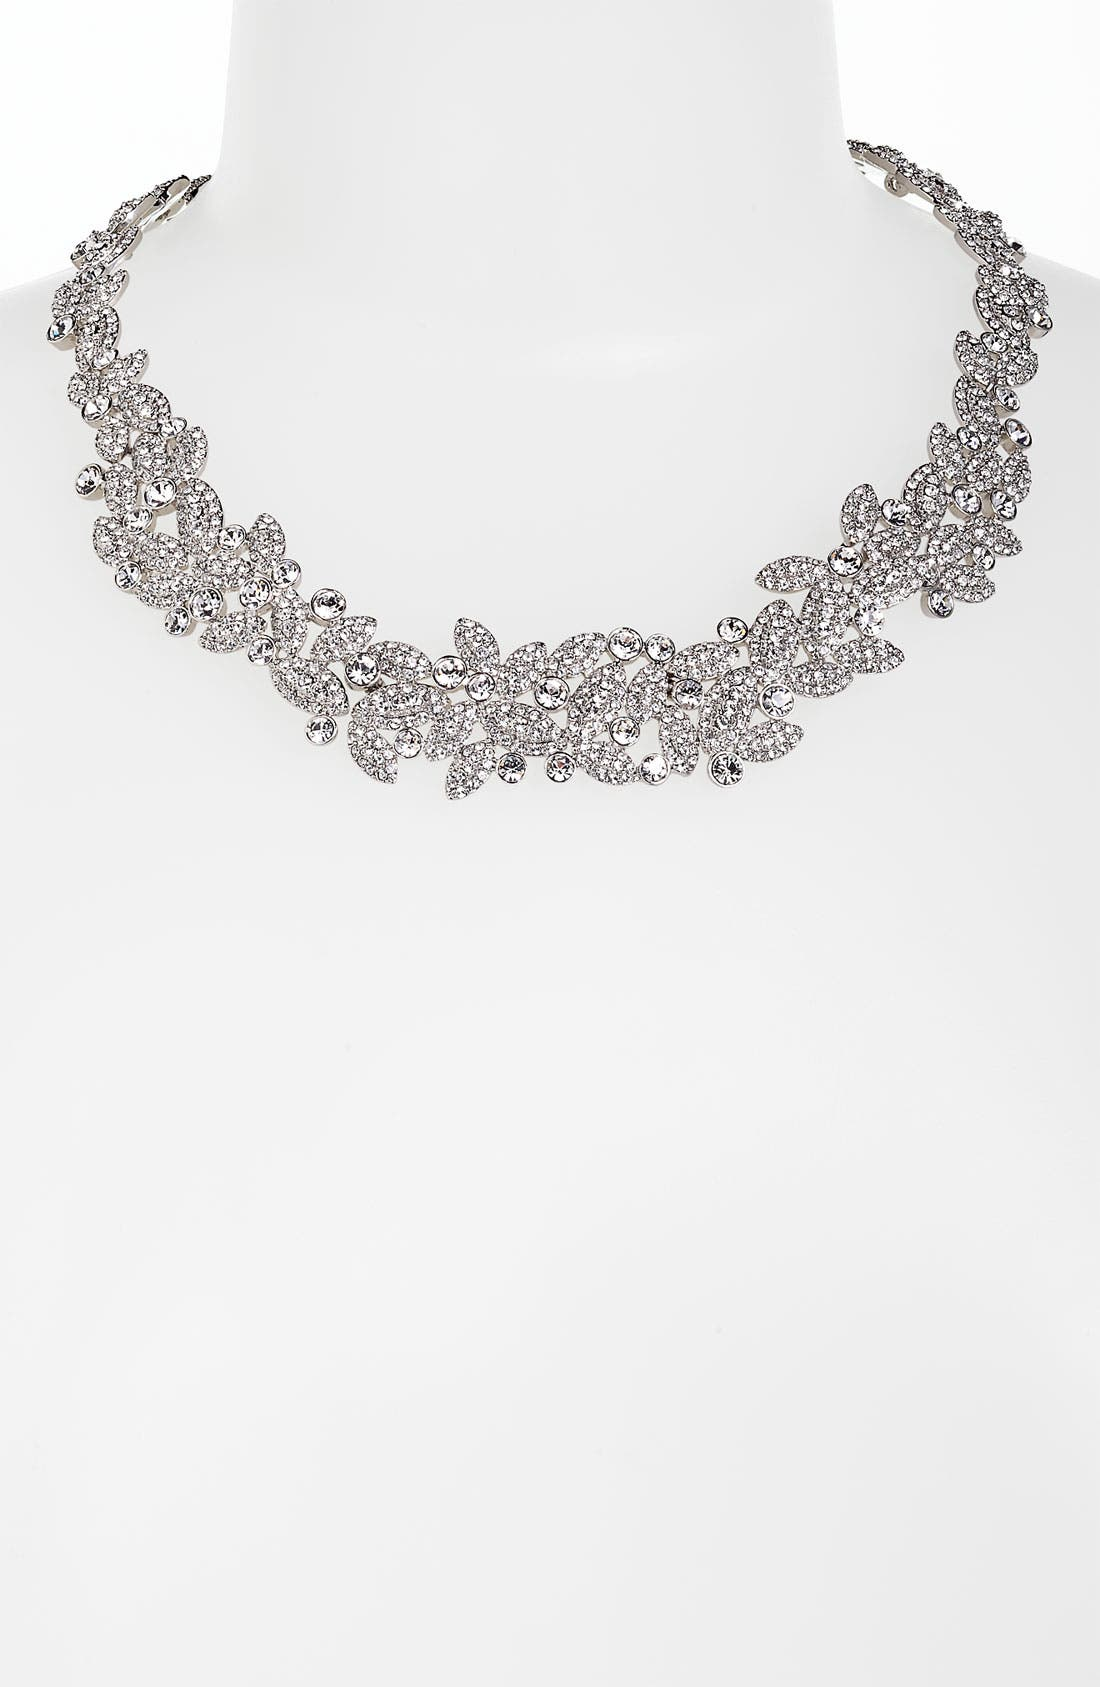 Alternate Image 1 Selected - Givenchy 'Femme - Kelly' Crystal Collar Necklace